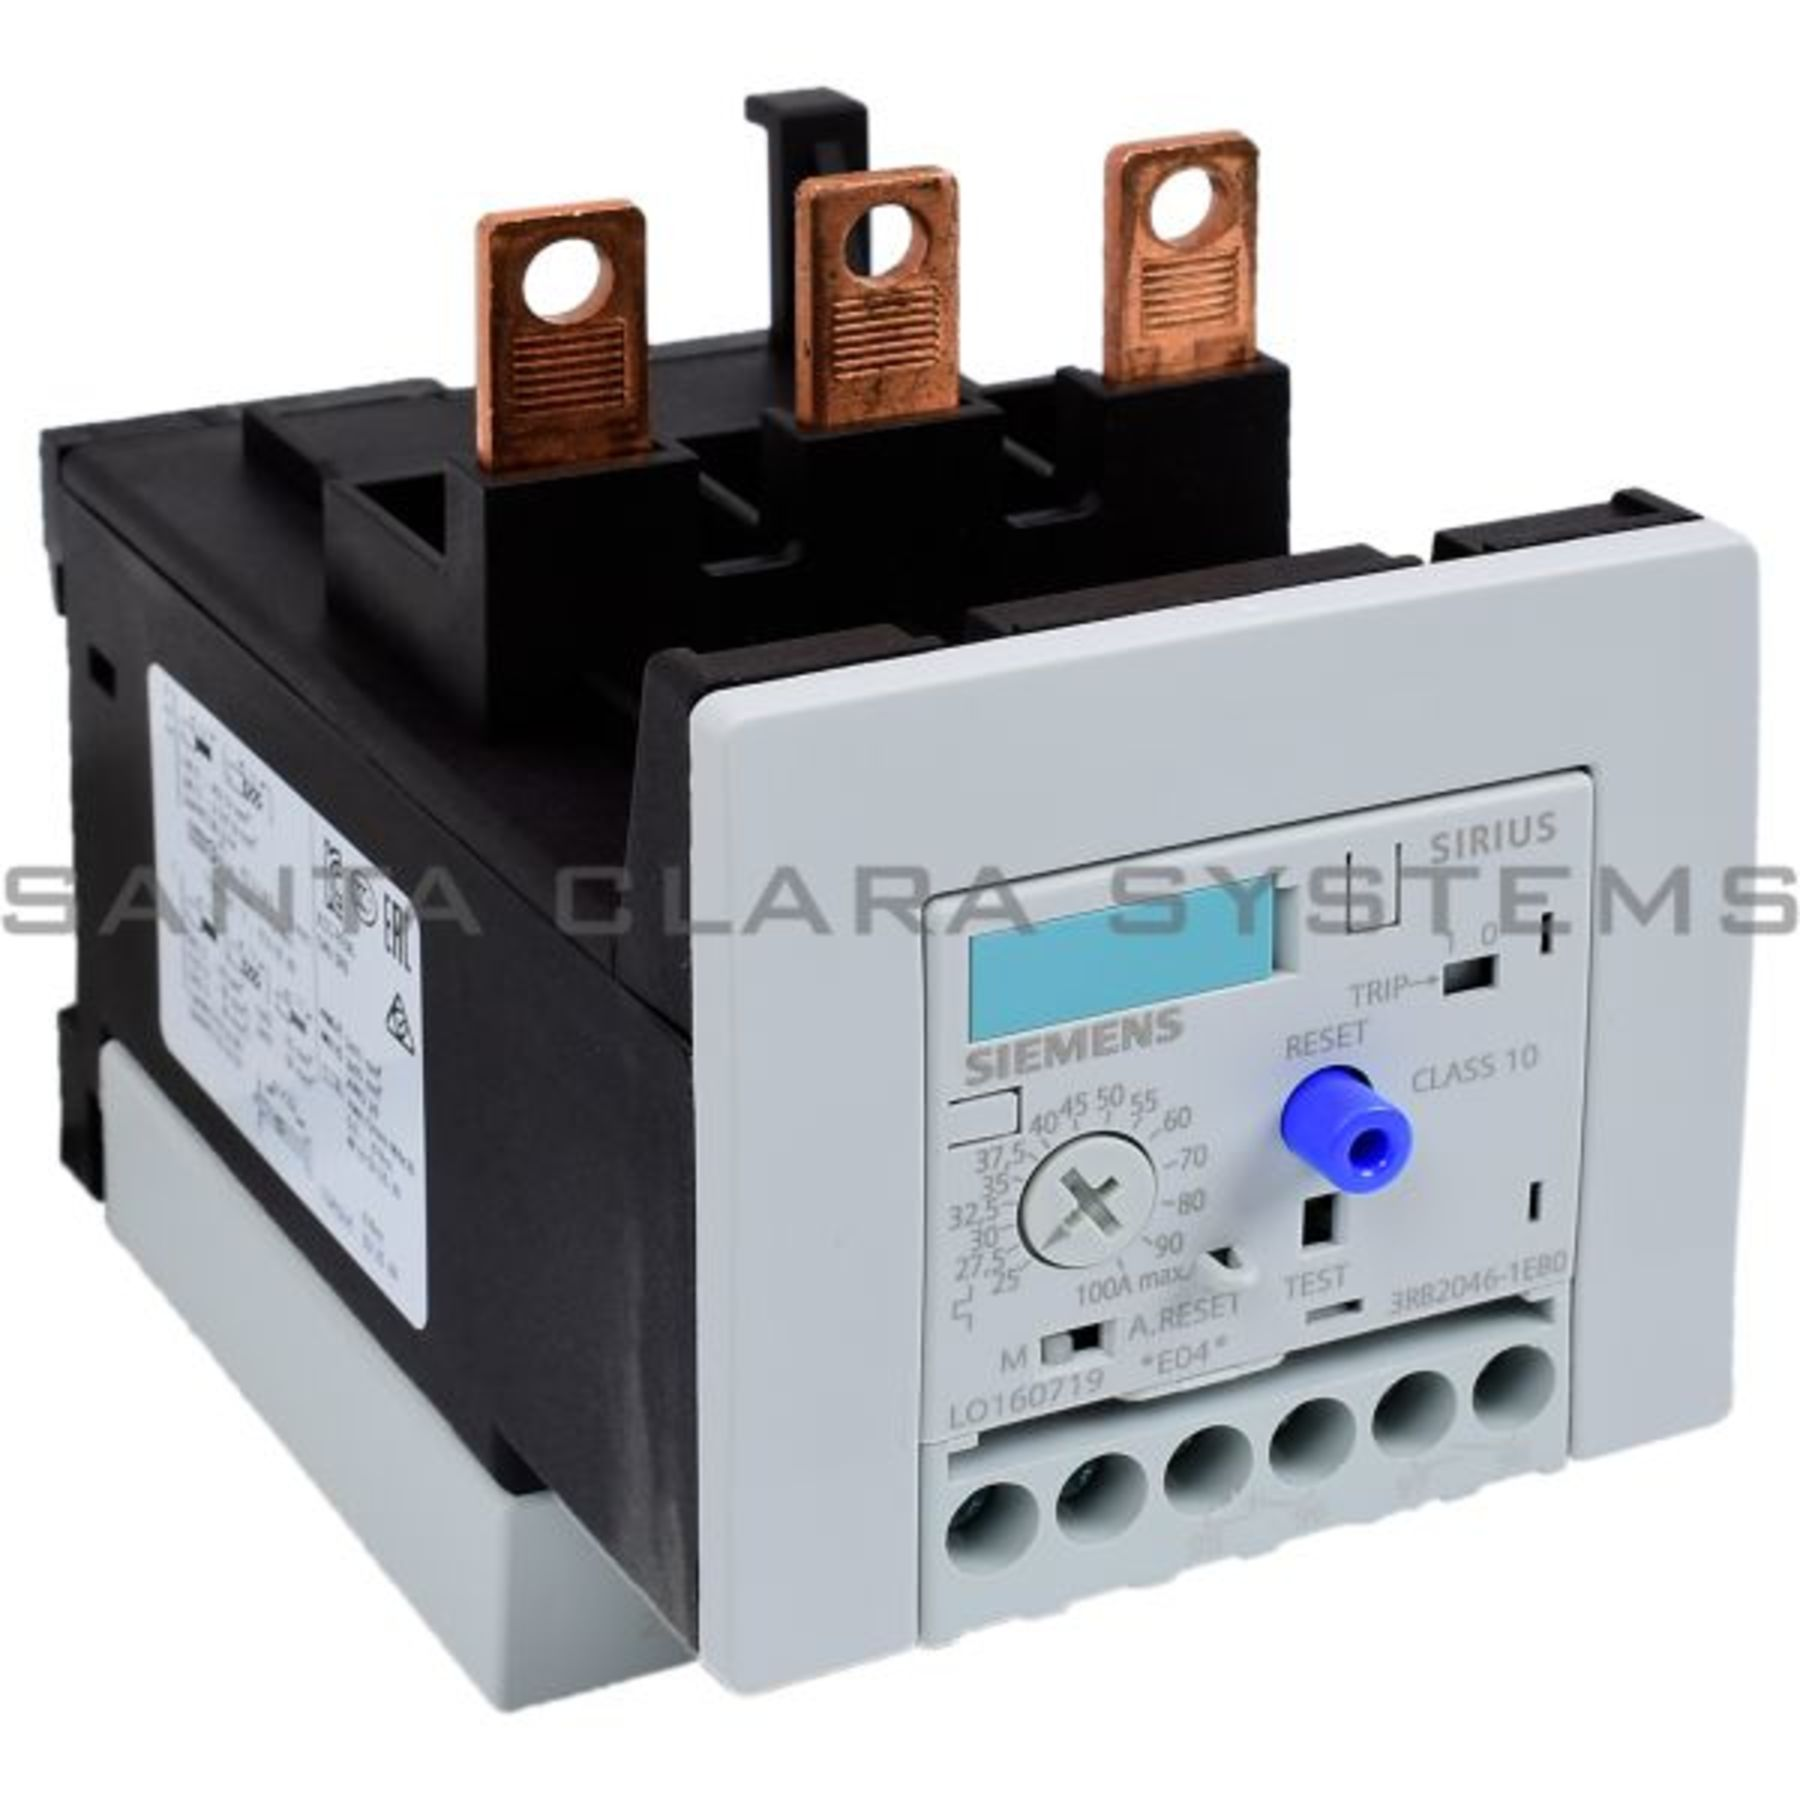 3RB2046-1EB0 Overload Relay | 3RB2046-1EB0 In-Stock  Ships